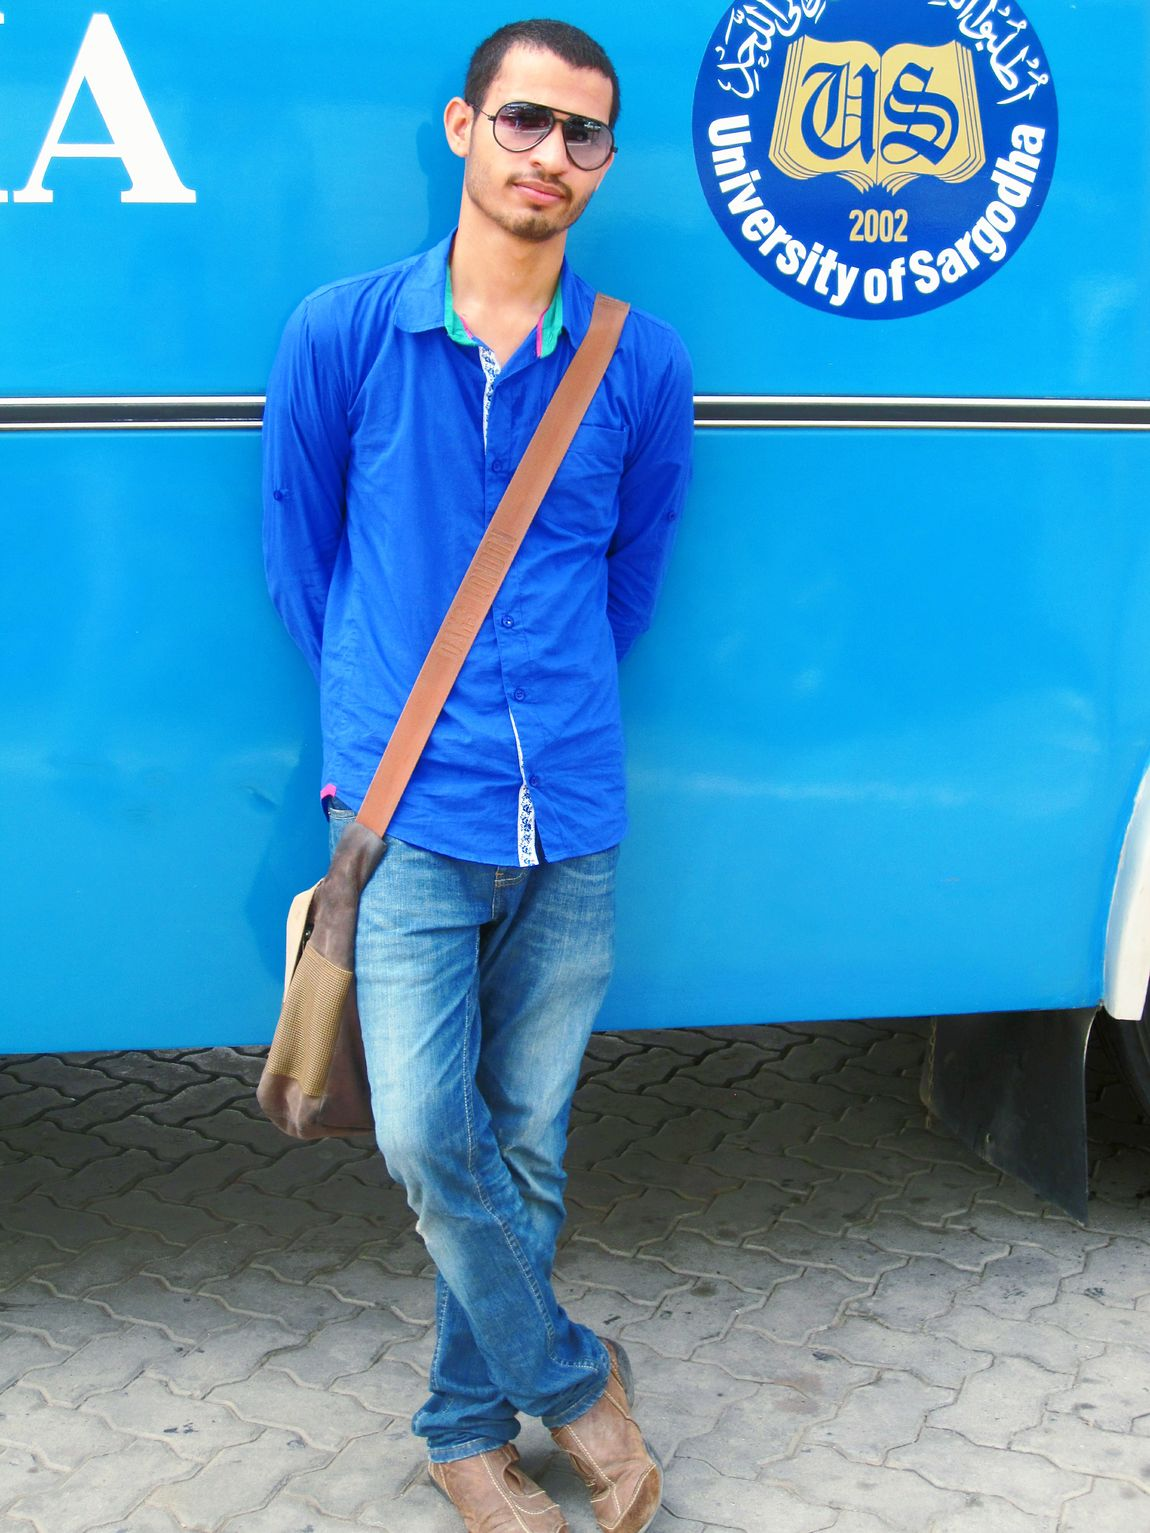 With Uni bus....:-)